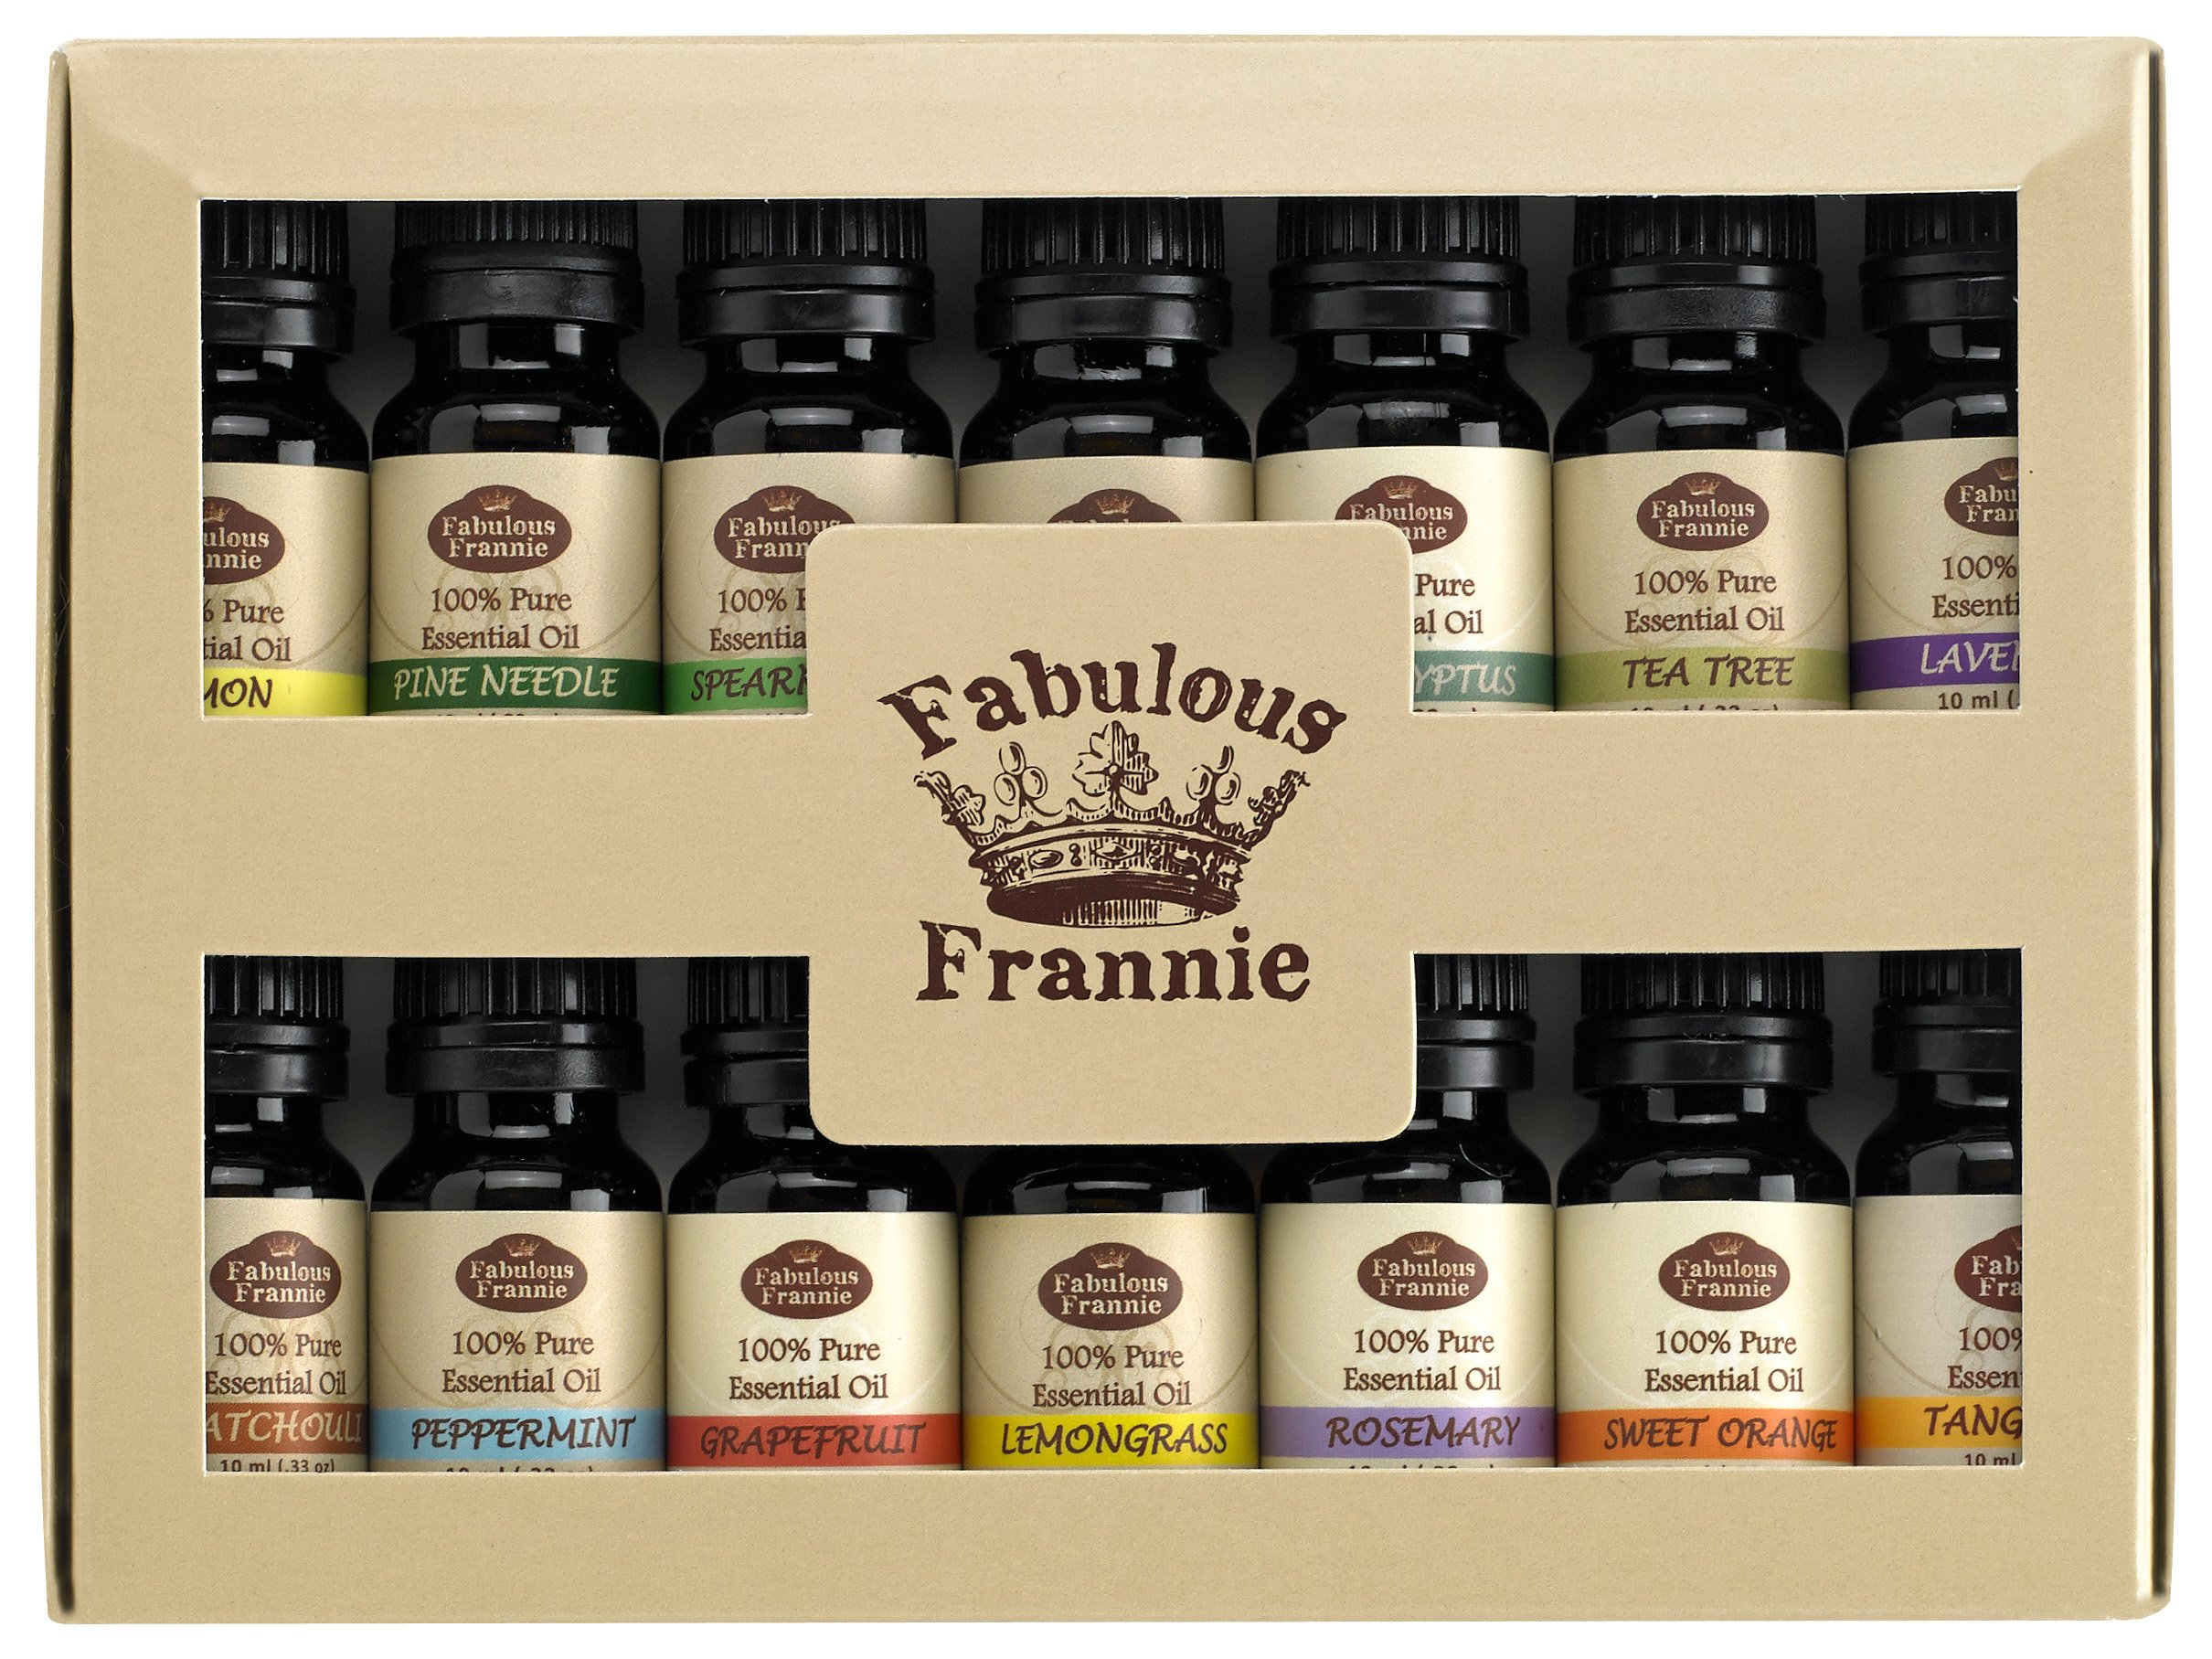 Fabulous Frannie - Aromatherapy Top 14 Essential Oil Set, 100% Pure - .33oz Size Bottles